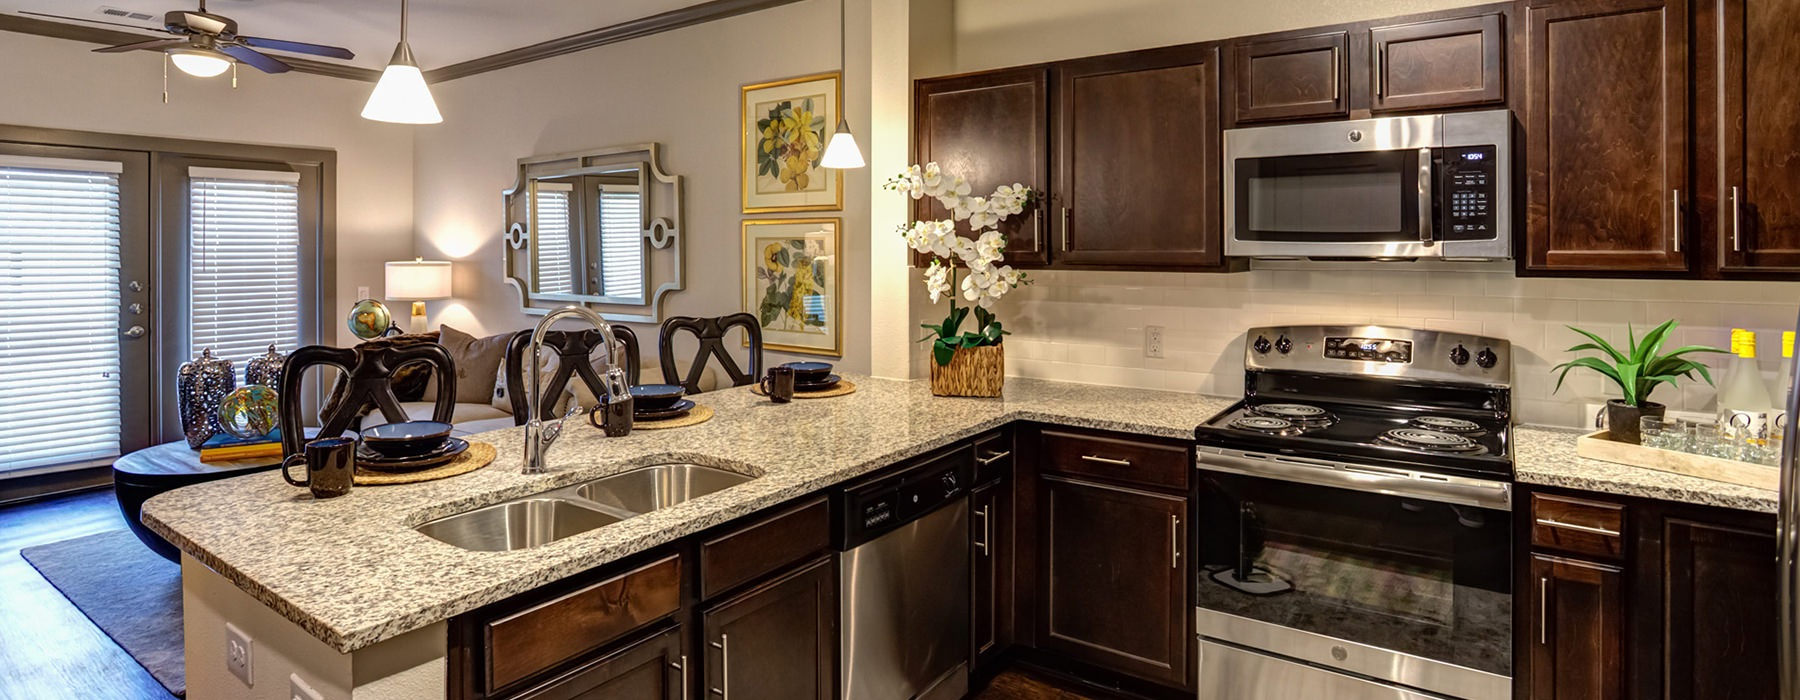 kitchen with stainless steel appliances and granite countertops next to dining area